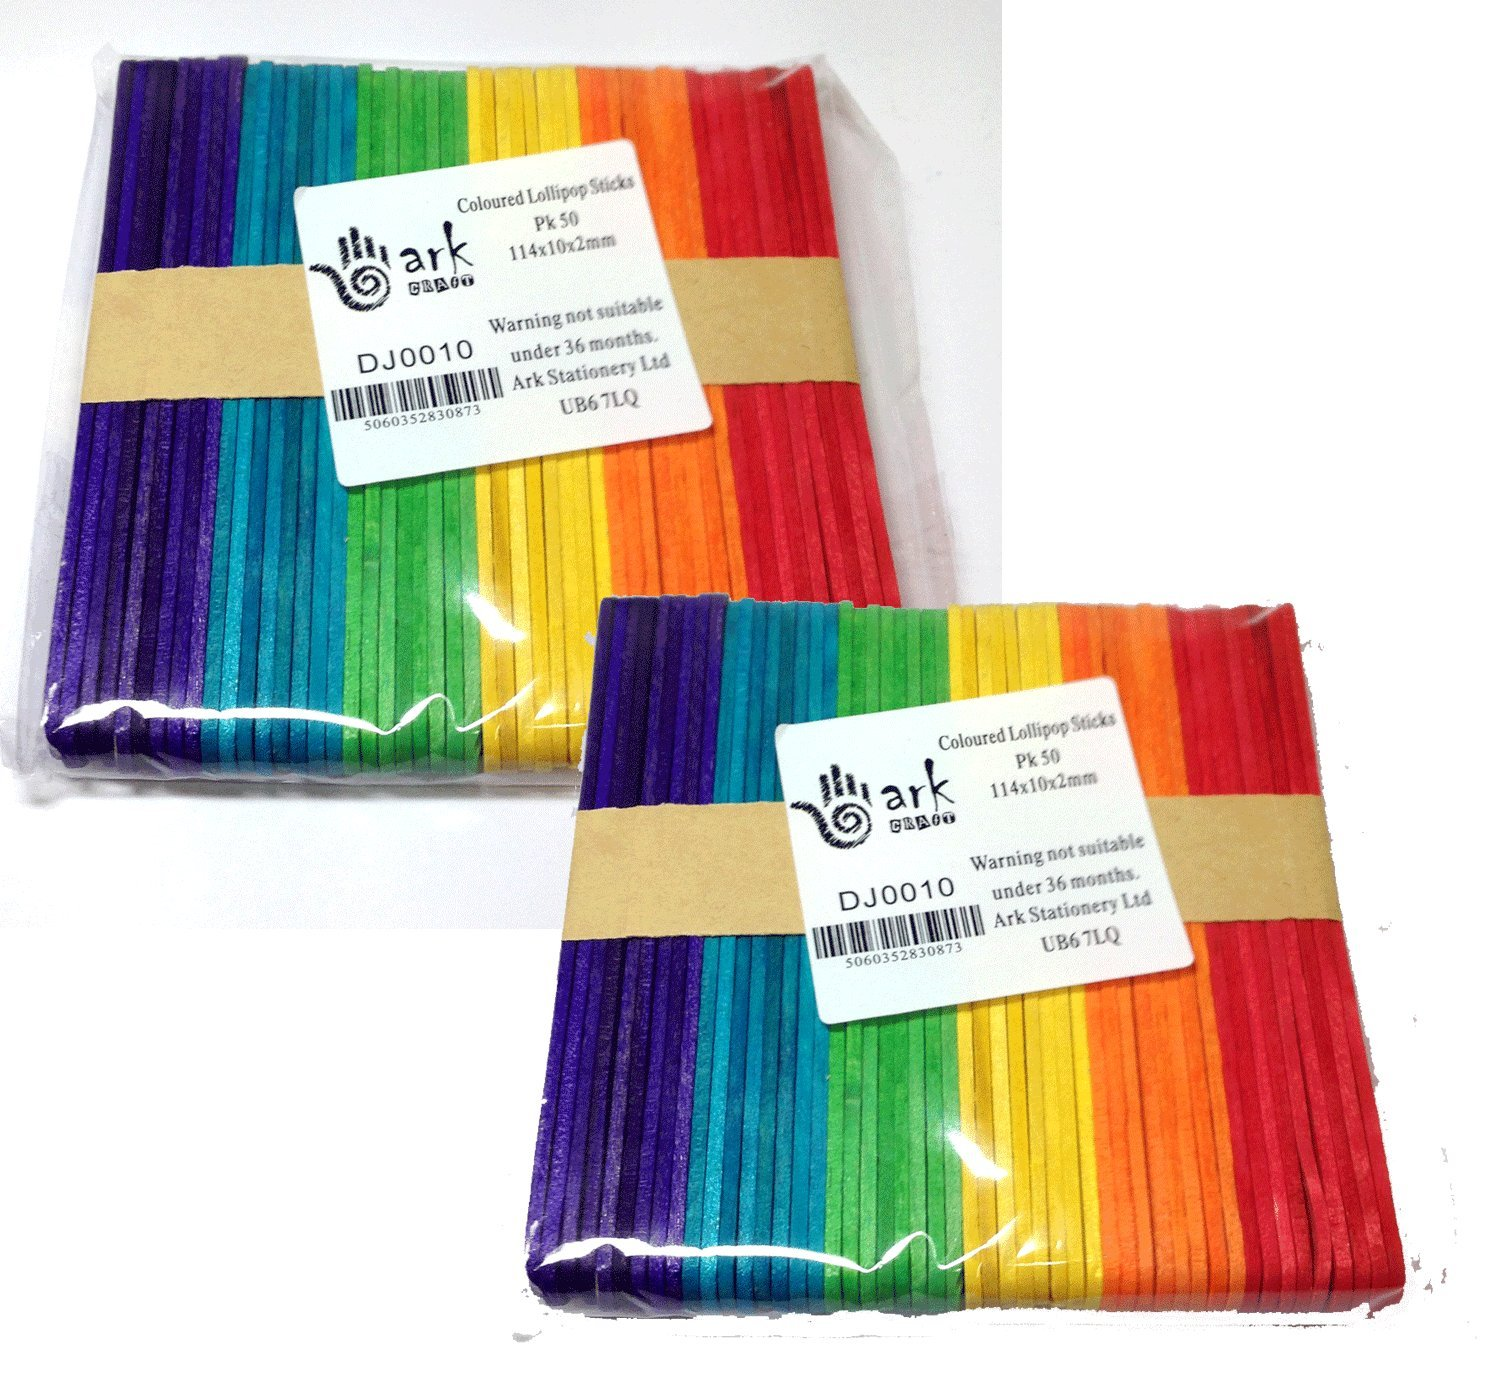 Ideal for model making and collage, these wooden lolly sticks are available plain or in an assortment of bright colours.